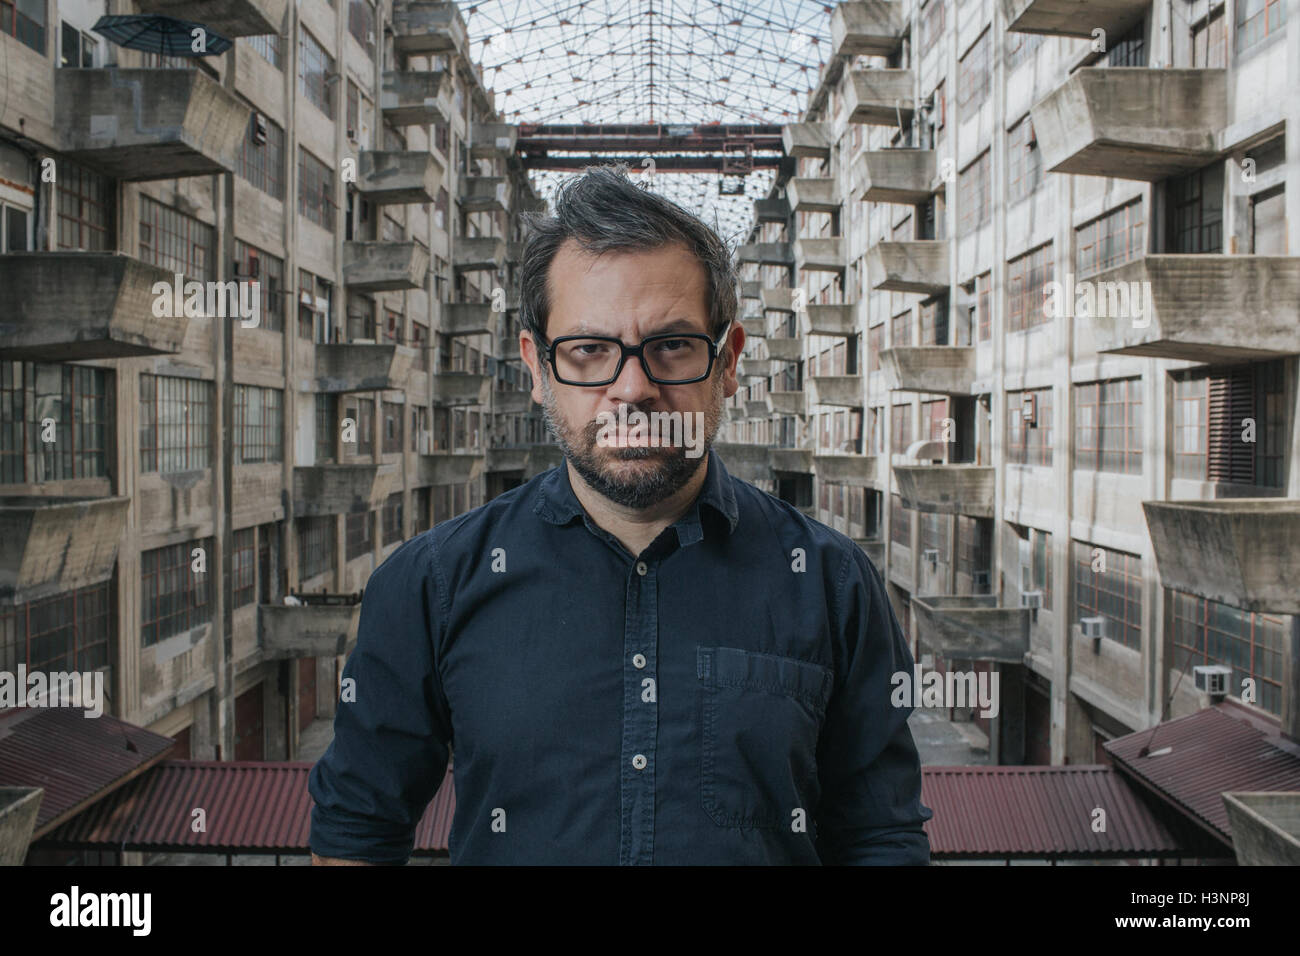 New York, Us. 11th Oct, 2016. HANDOUT - The undated handout photo shows the the artist Pedro Reyes in New York, Stock Photo